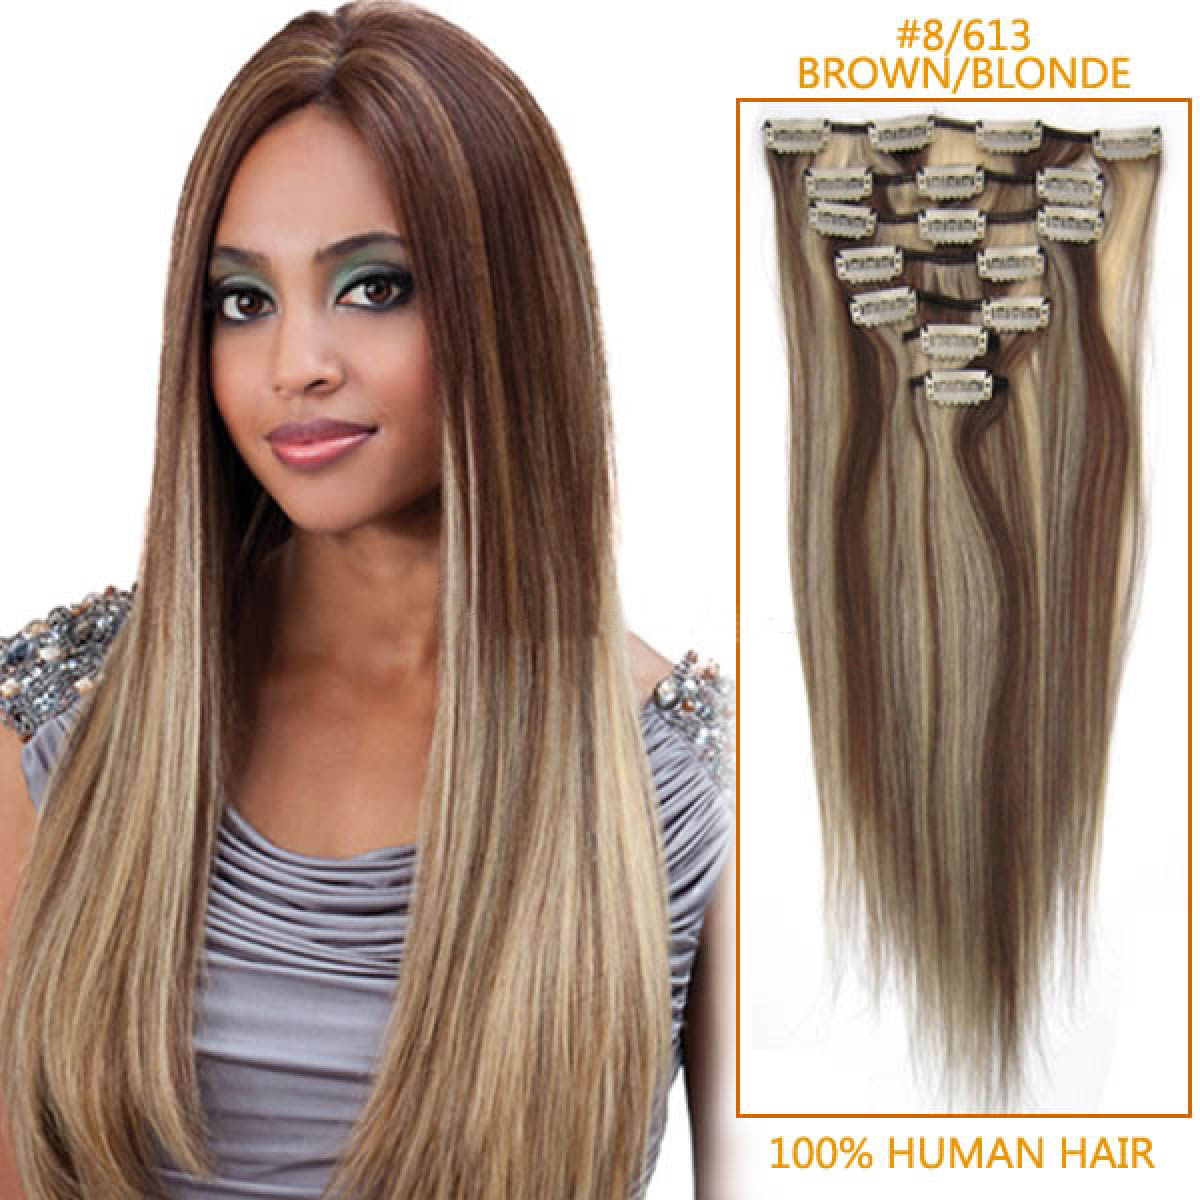 28 Inch 8613 Brownblonde Clip In Human Hair Extensions 8pcs